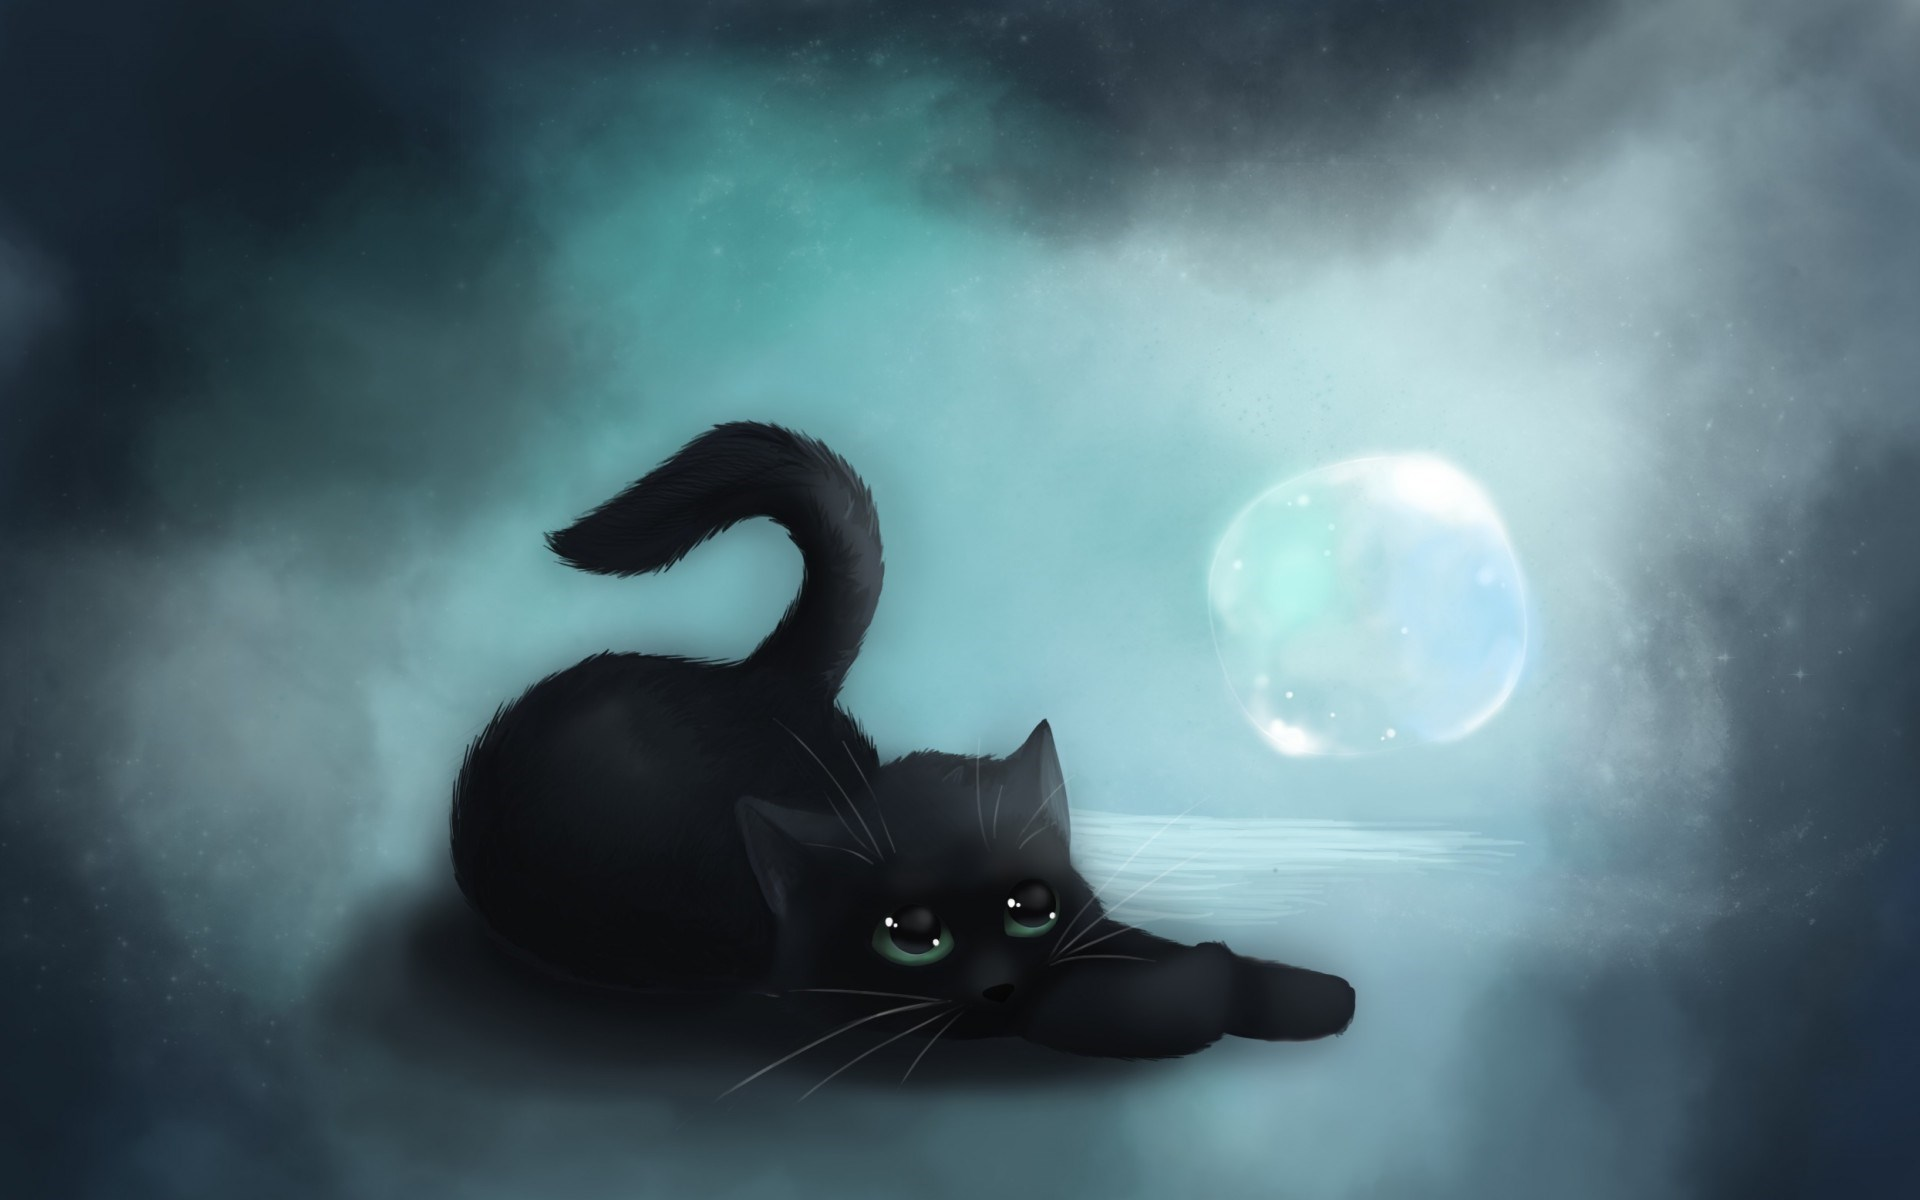 Kitten Bubble Artwork